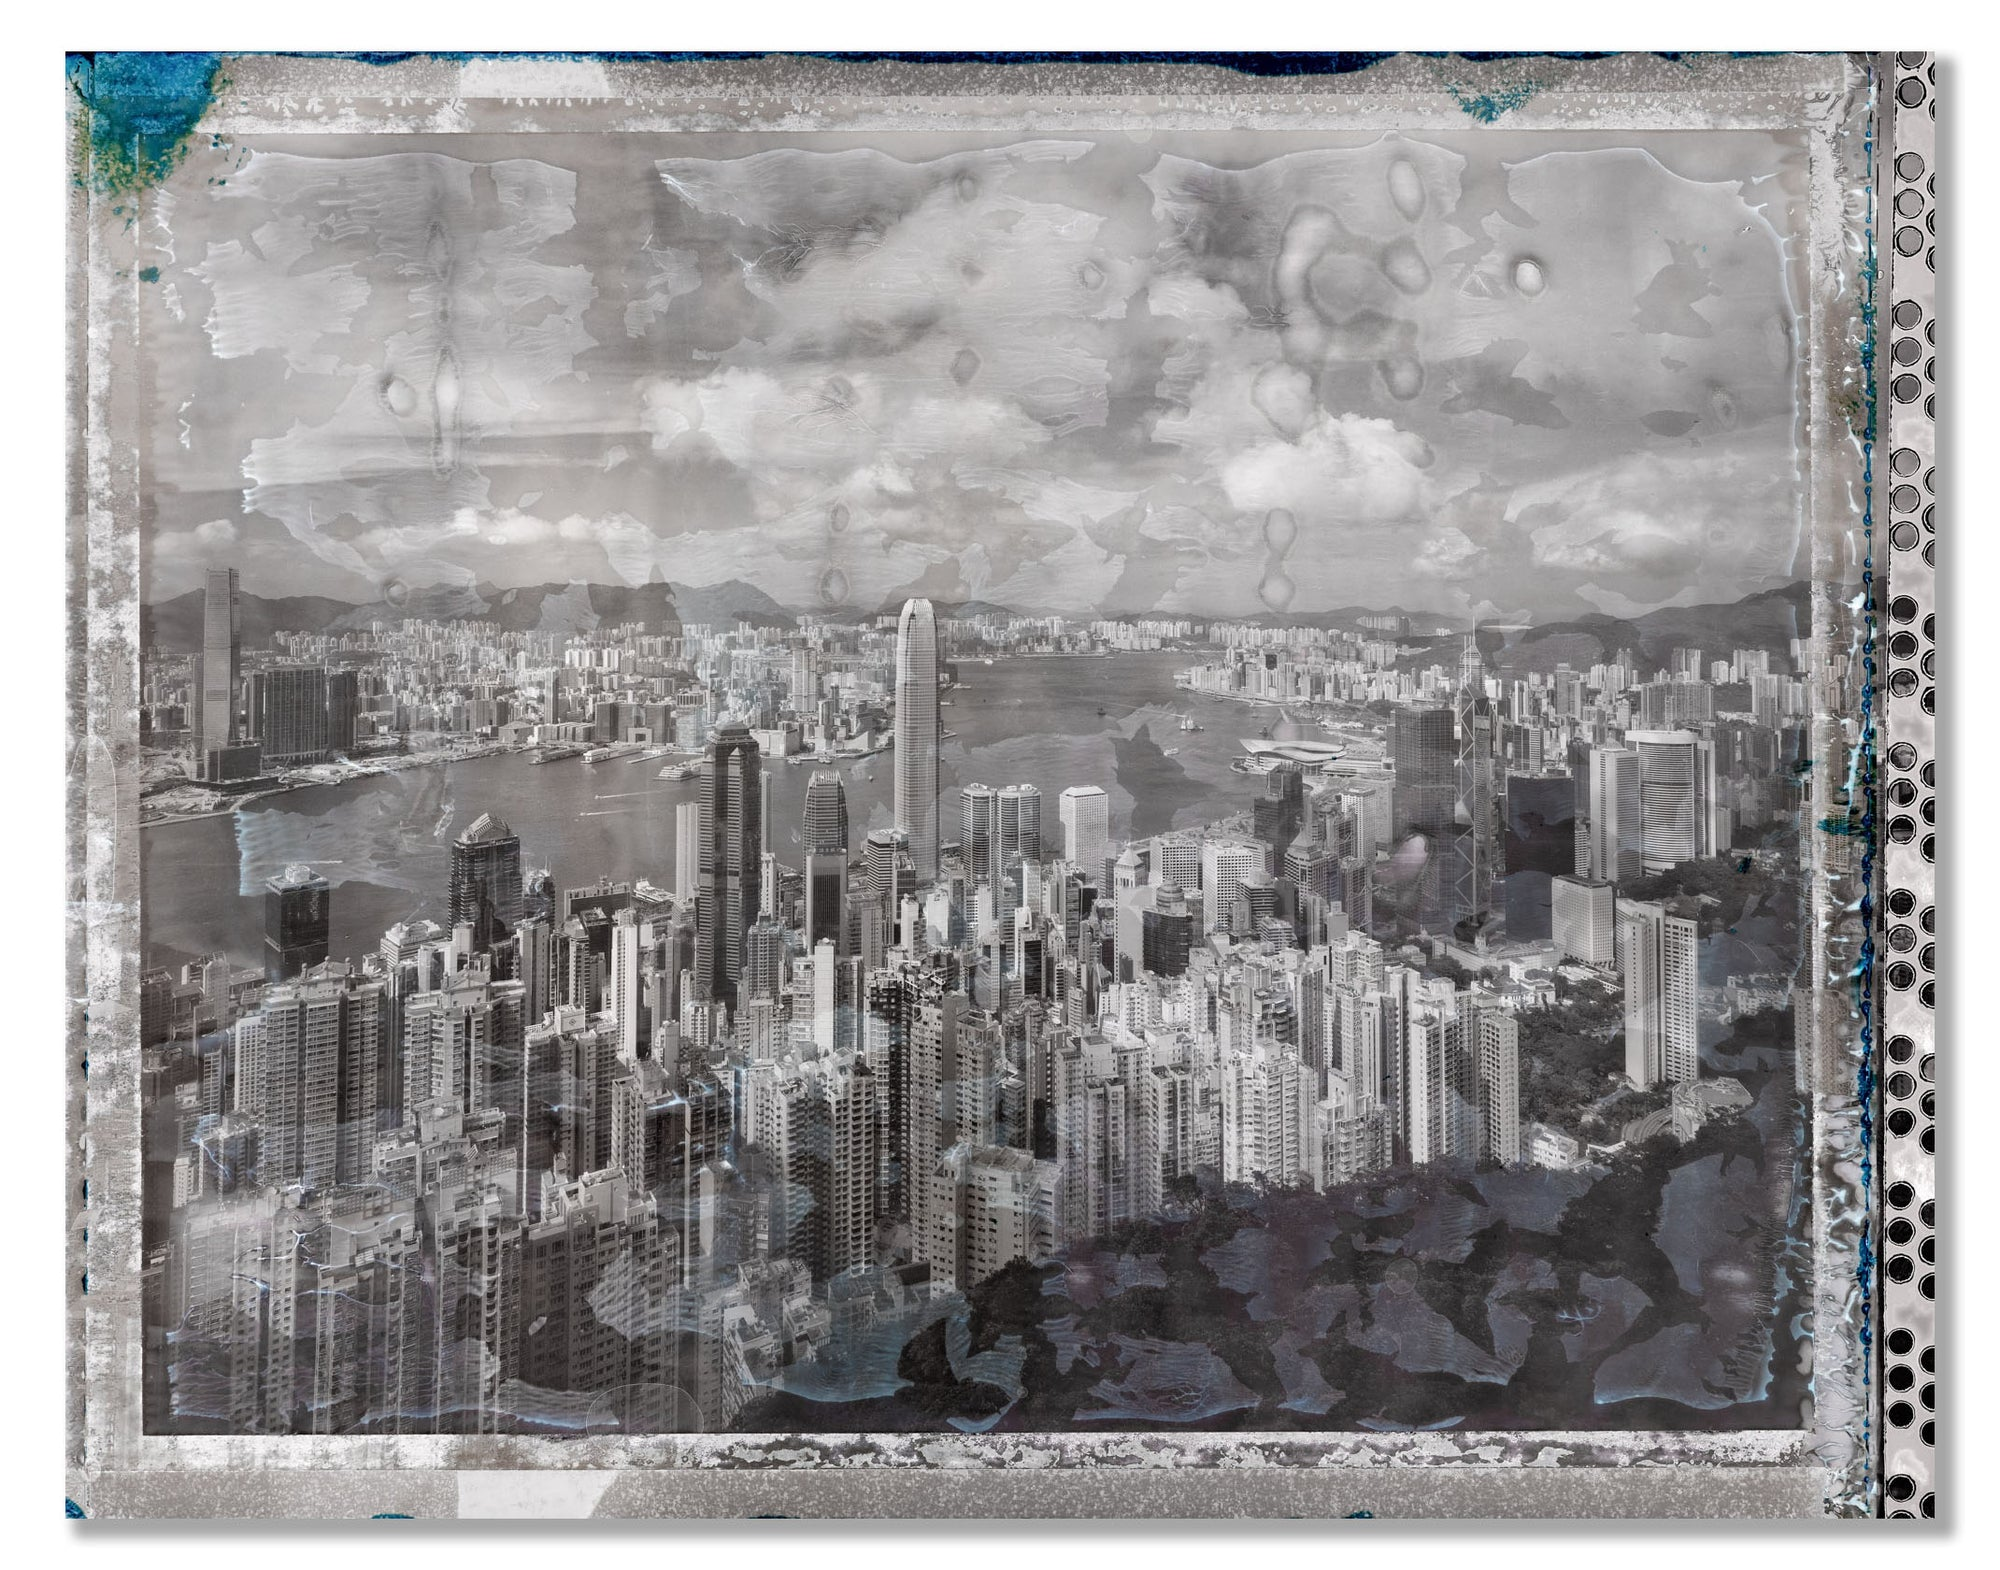 Polaroid, Peak View, Hong Kong